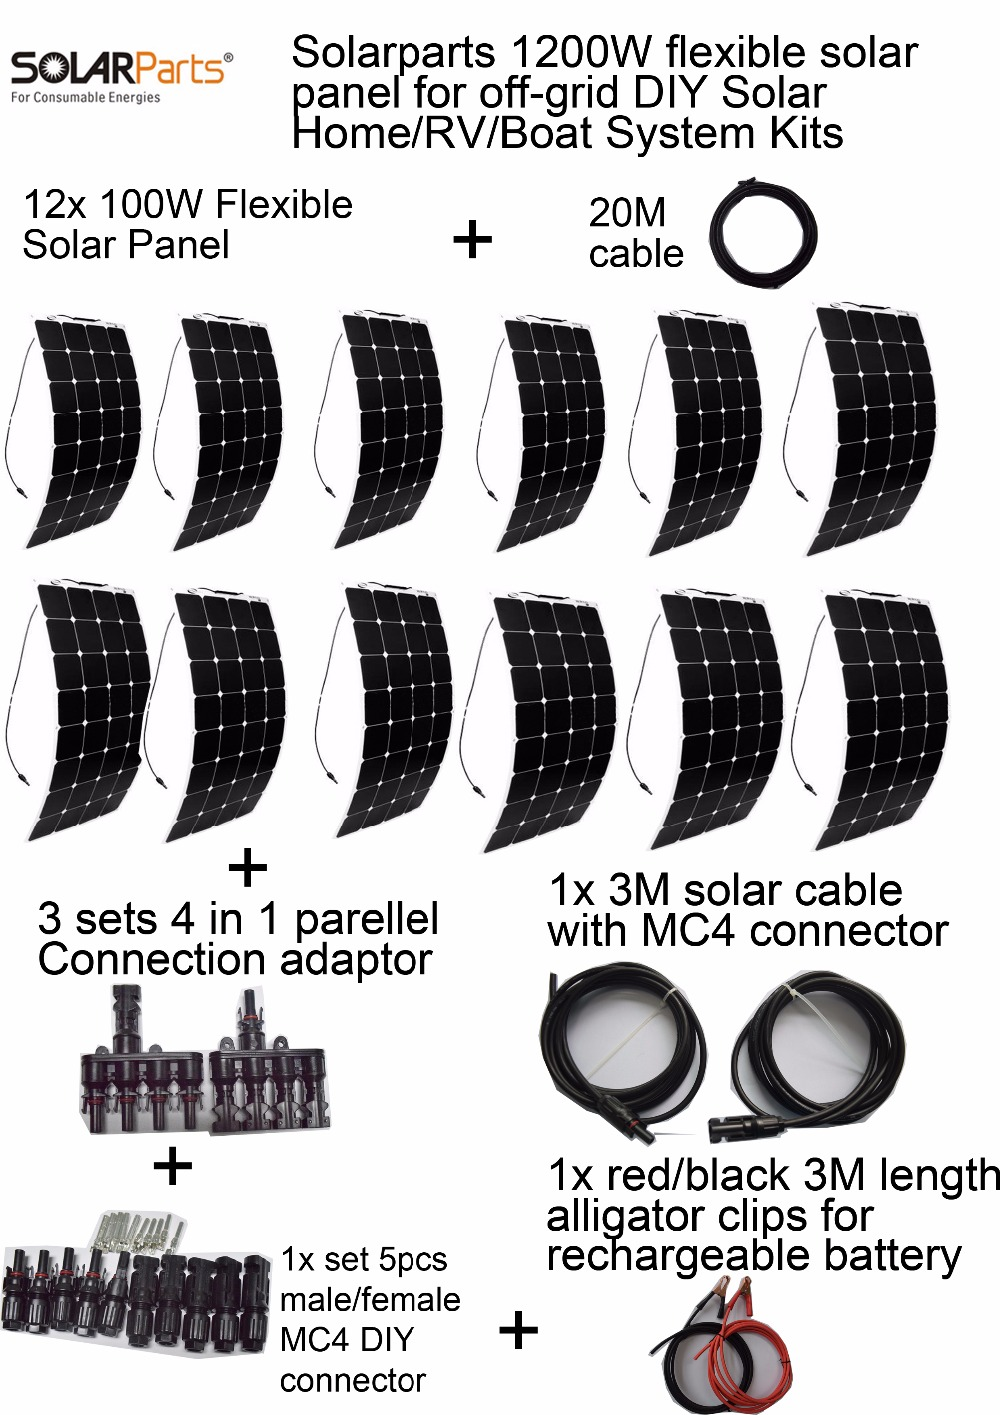 Solarparts Off-grid Solar System KITS 1200W Flexible Solar Panel 3 Sets 4 In1 MC4 Adaptor Cable, Full Set Connecting Cable Solar